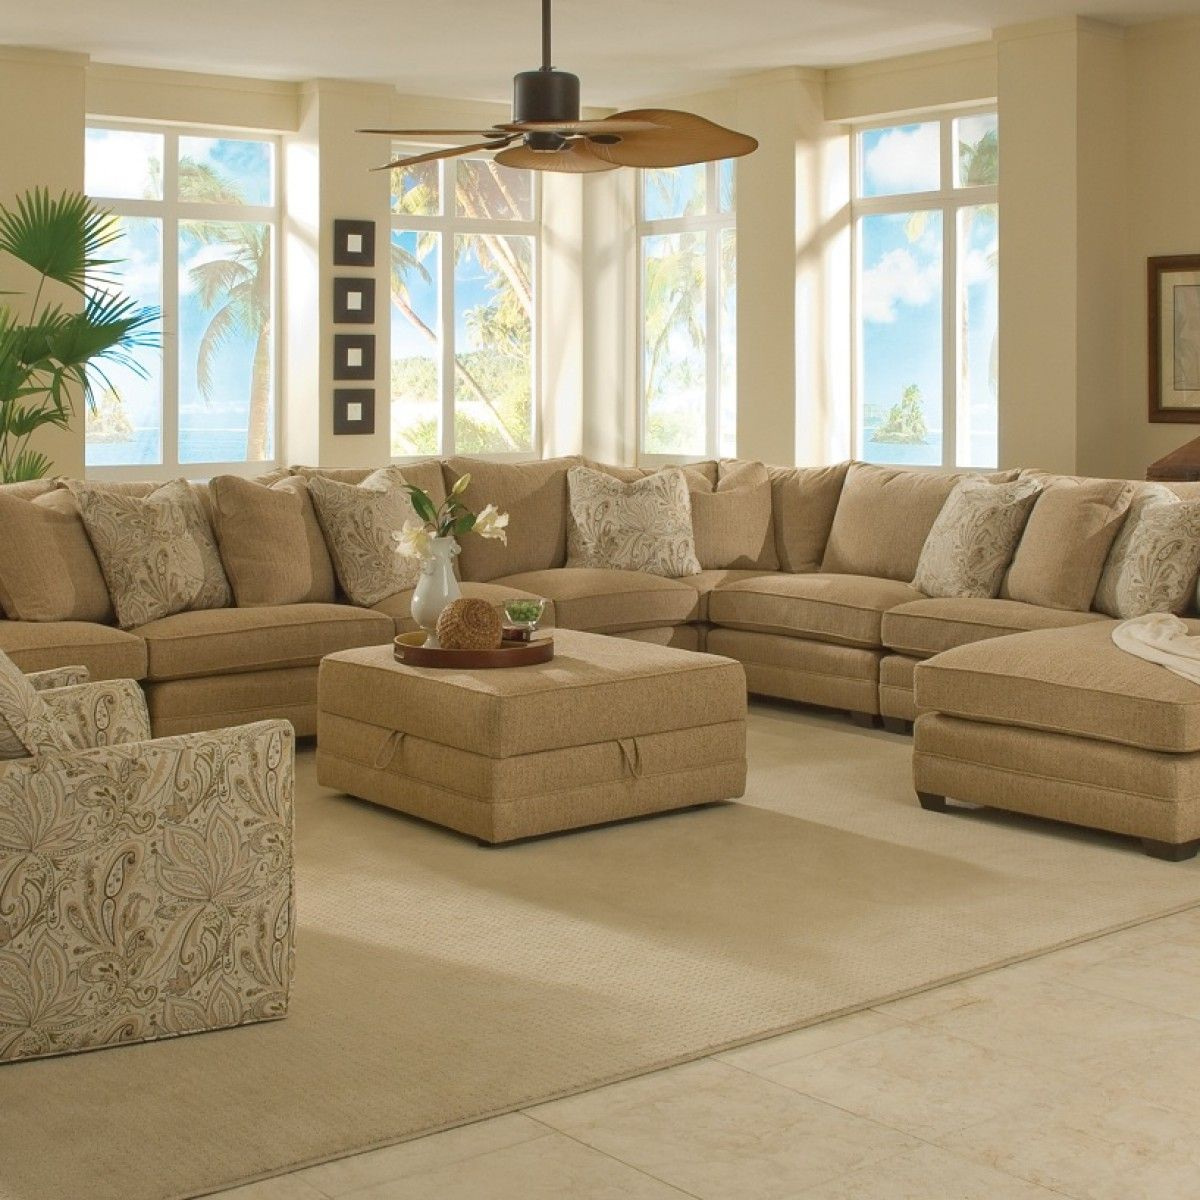 Magnificent large sectional sofas family room Design ideas for large living rooms